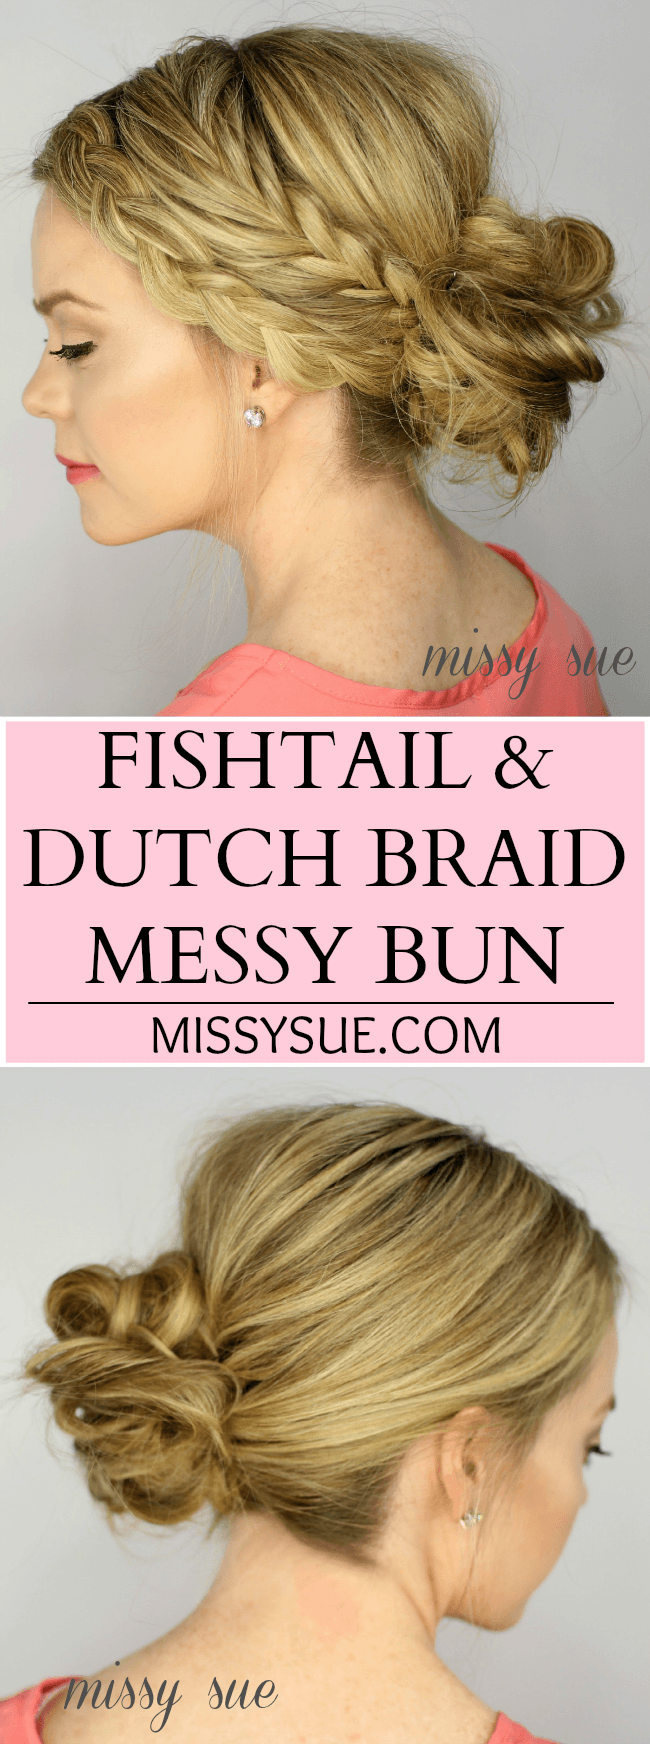 Fishtail Dutch Braid Messy Bun | MissySue.com